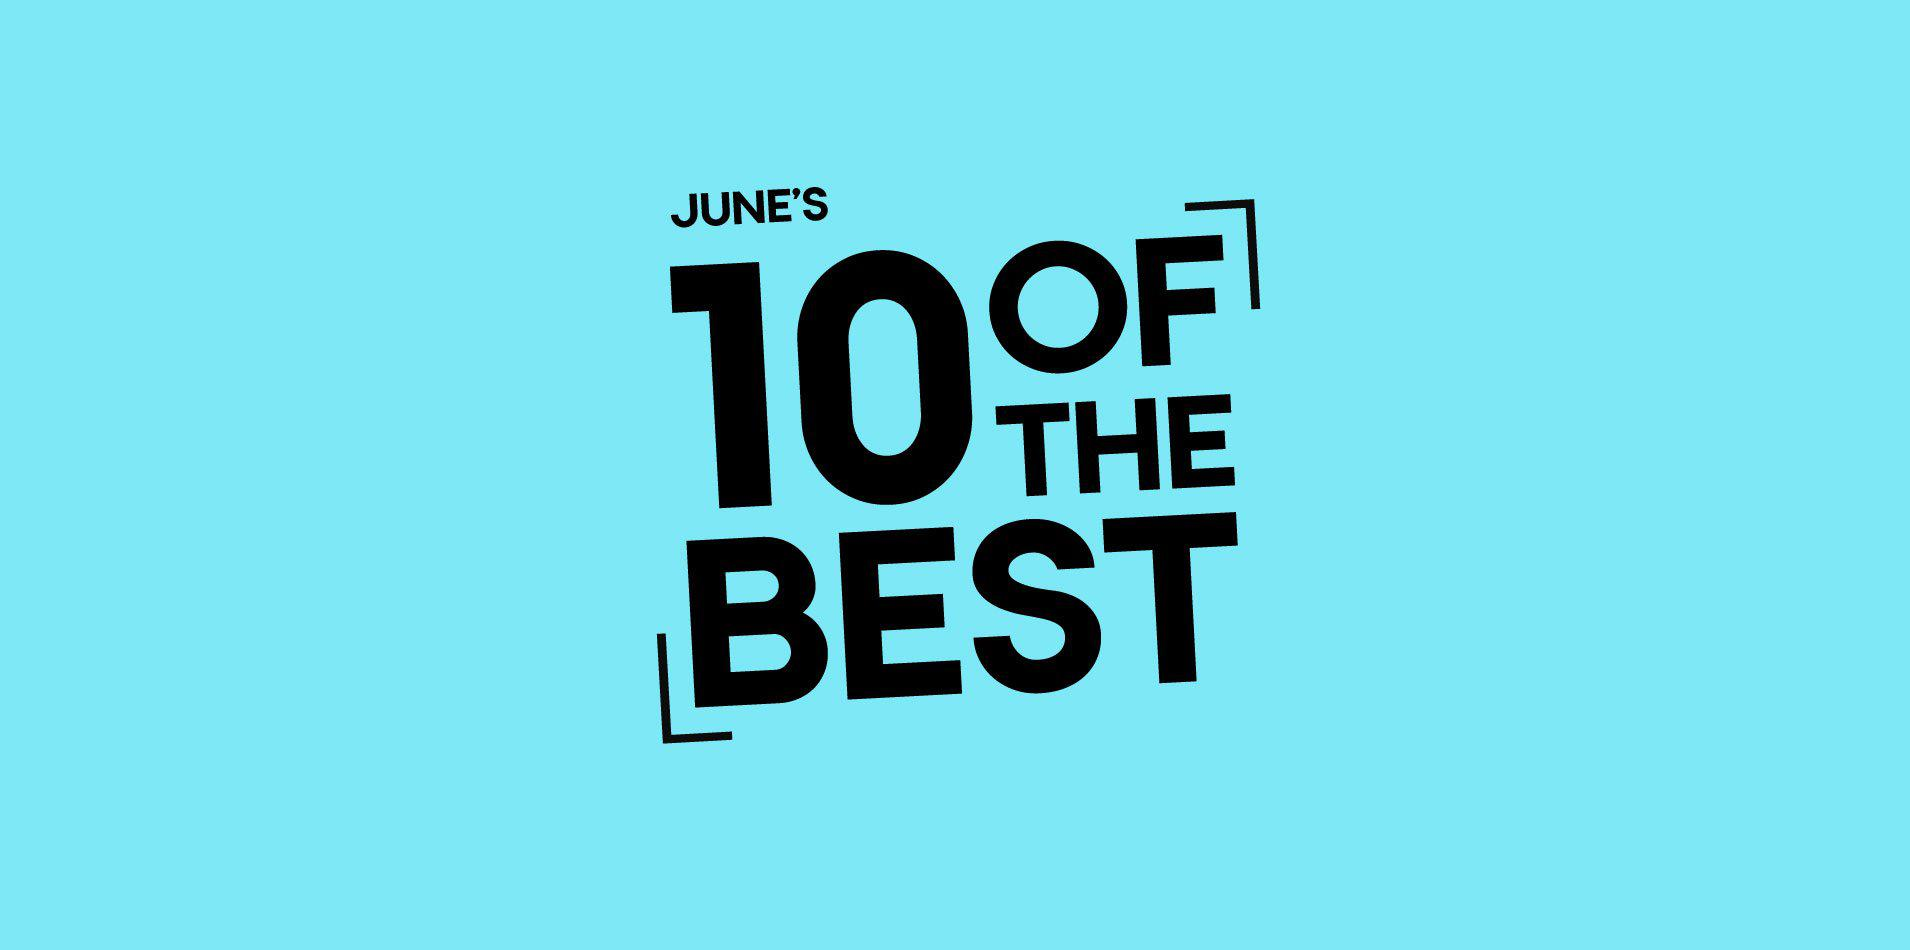 10 of the Best - June